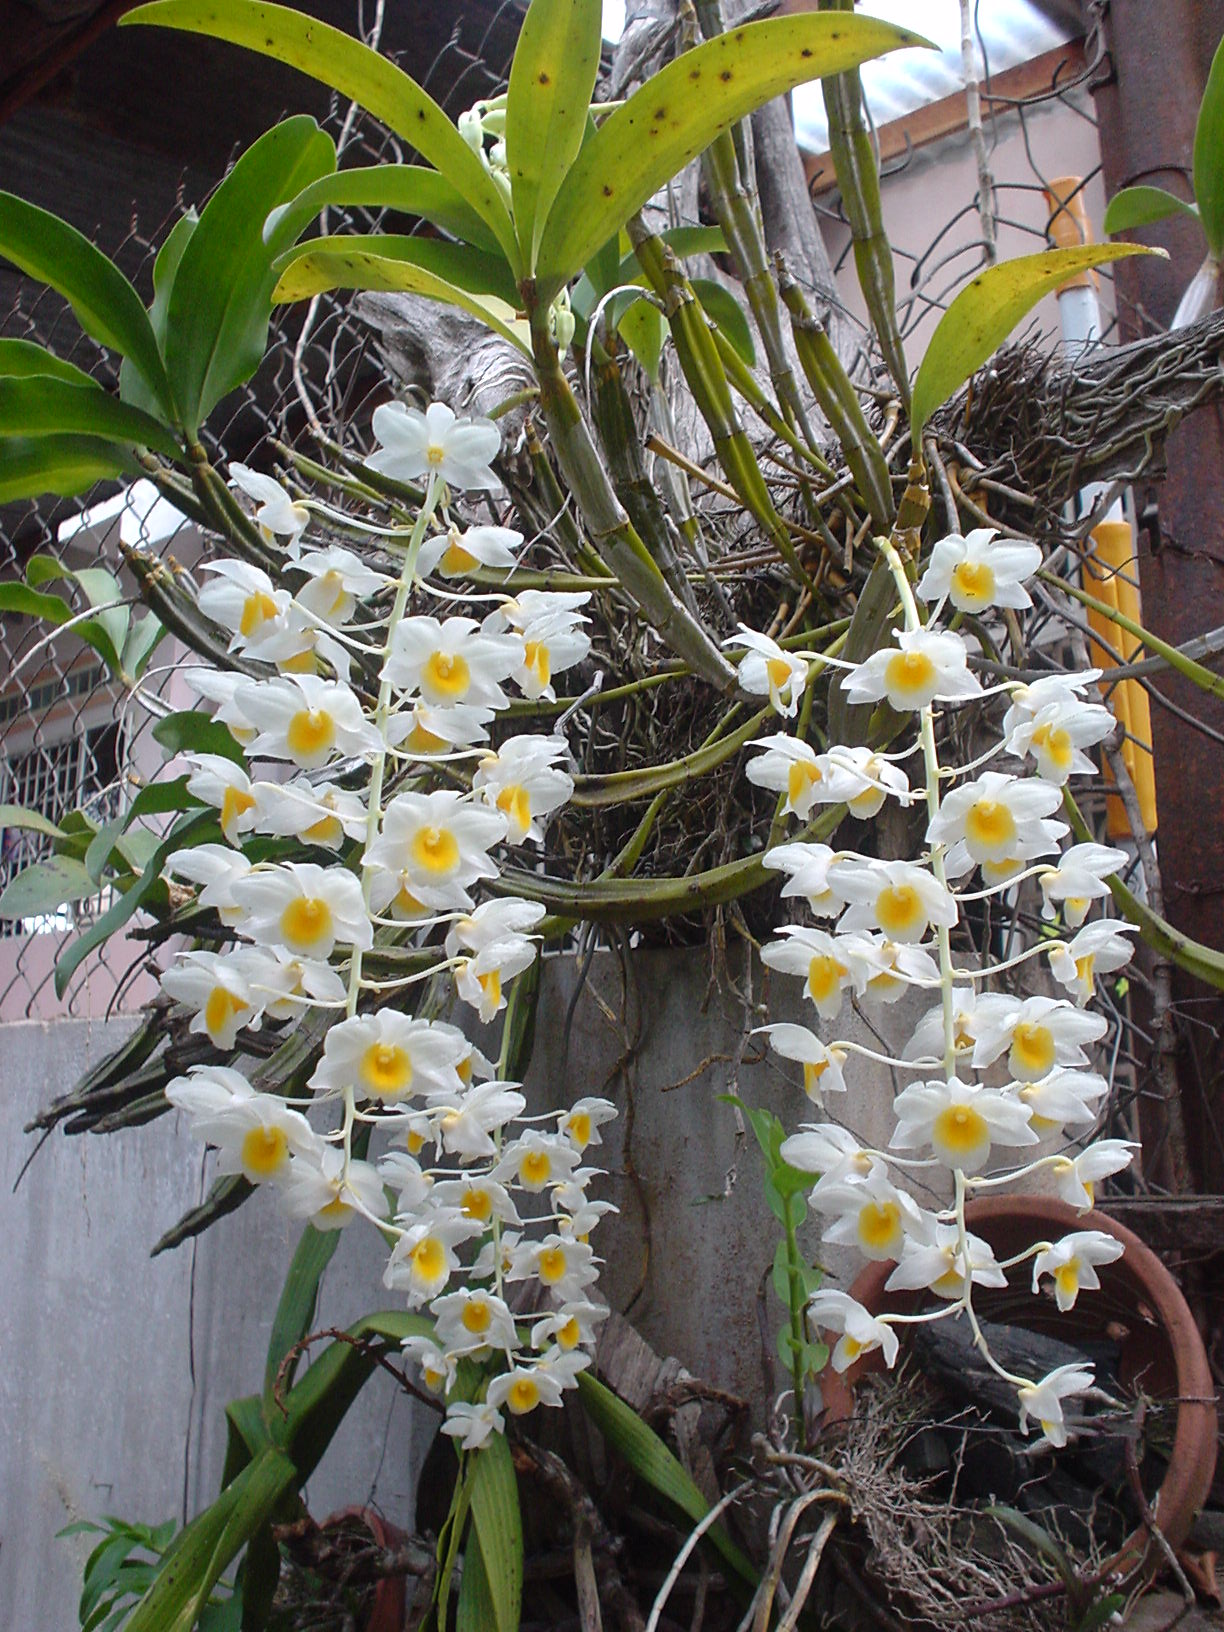 http://upload.wikimedia.org/wikipedia/commons/0/06/Dendrobium_palpebrae_Phonglan02.JPG